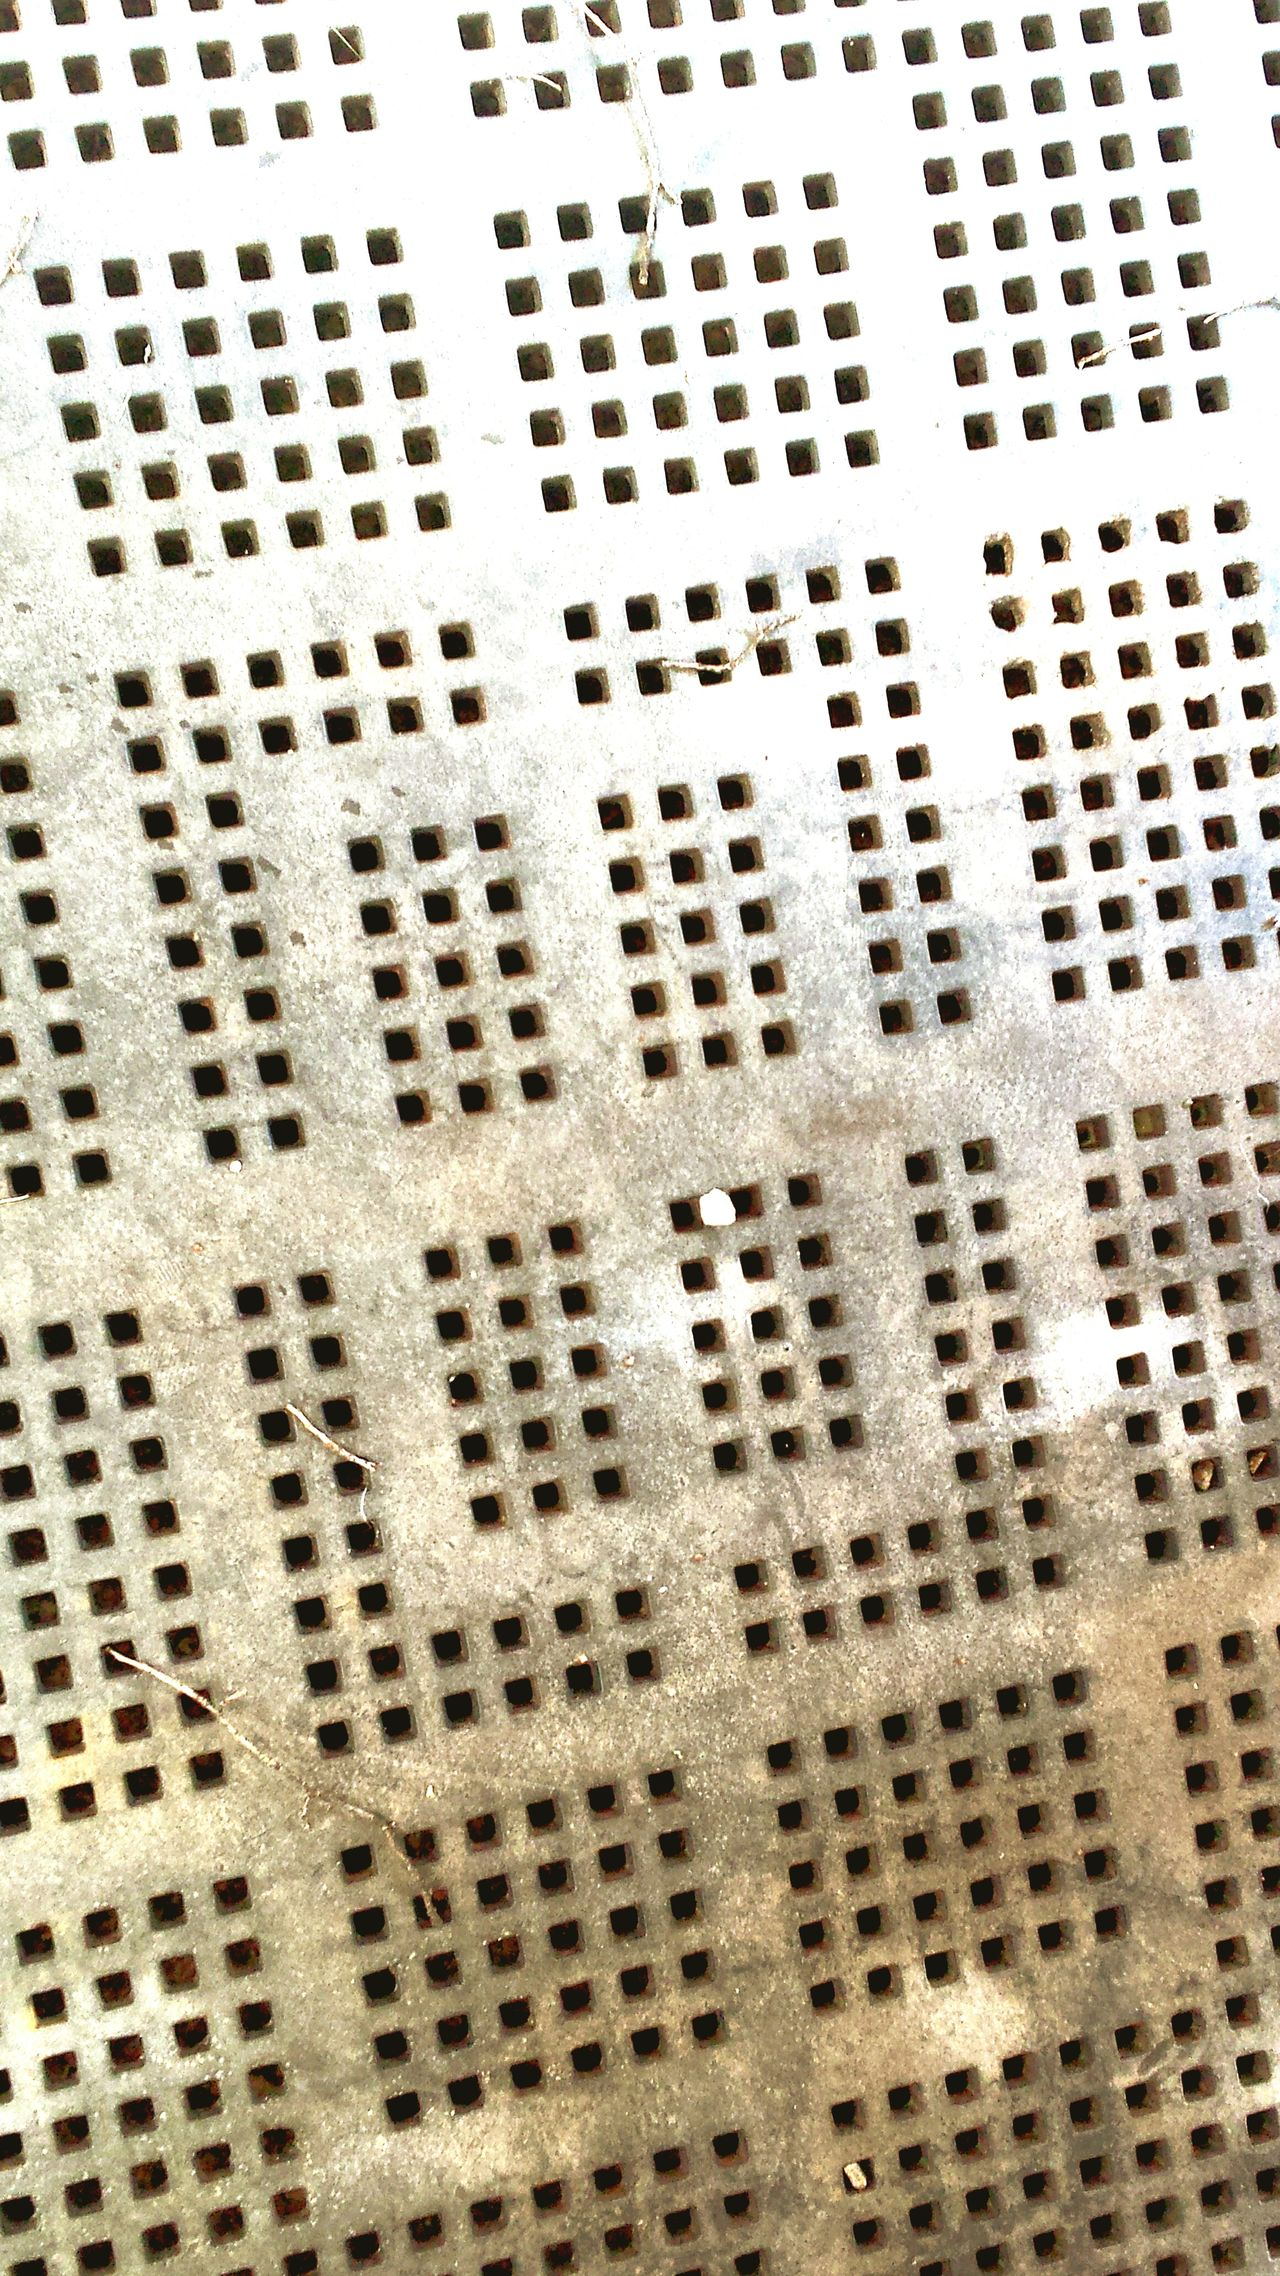 Grate Bored On A Break Quality Time Taking Photos Metal Observing Urban Filter 4 Enjoying The View Light And Shadow Black